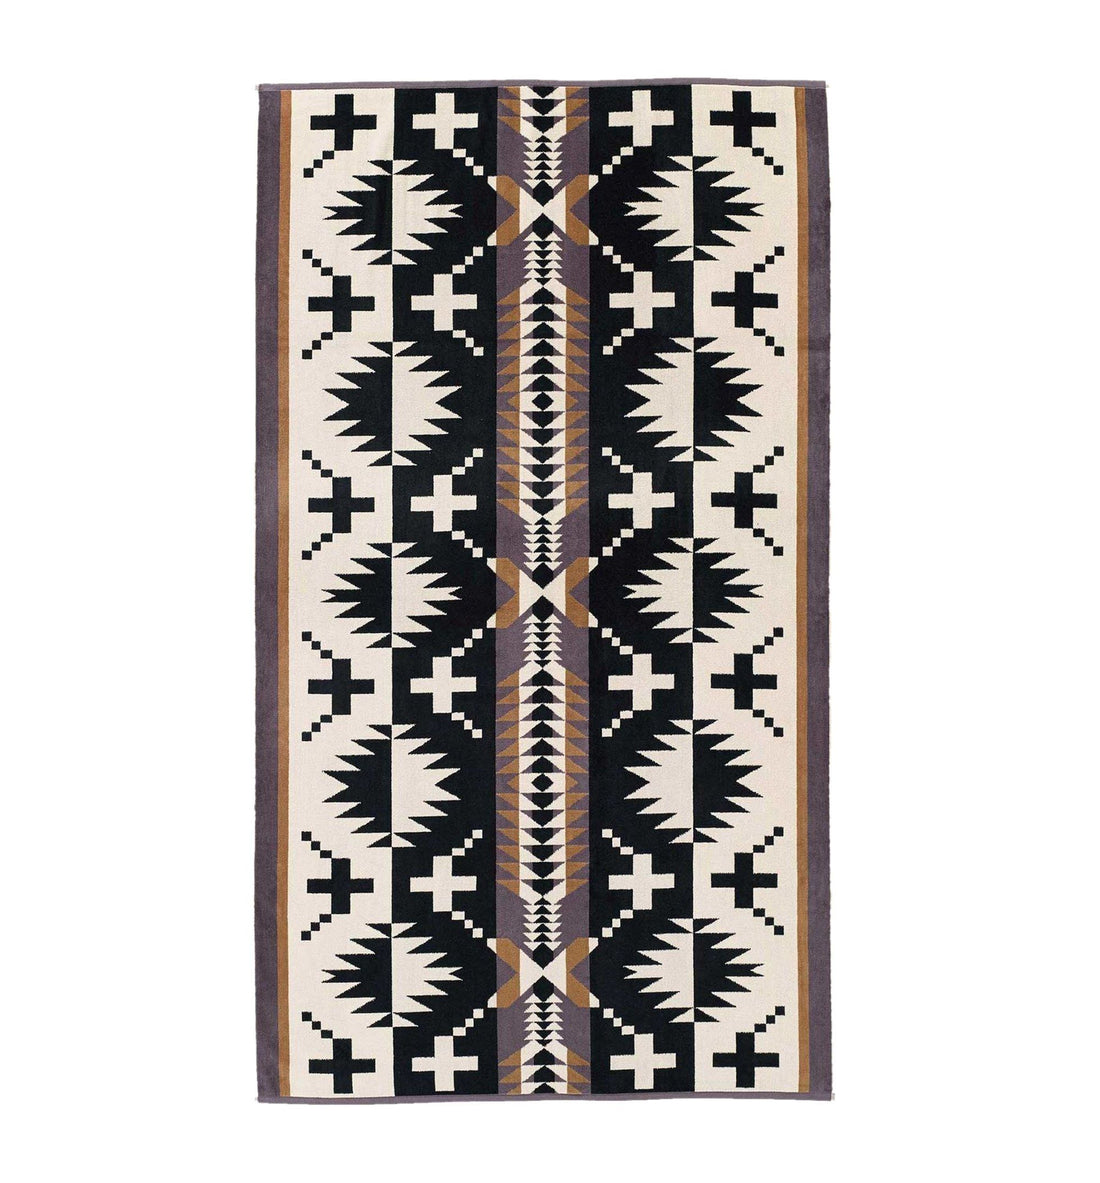 Pendleton Woolen Mills Oversized Jacquard Towel - Spider Rock - Outdoor Living/Travel - Iron and Resin